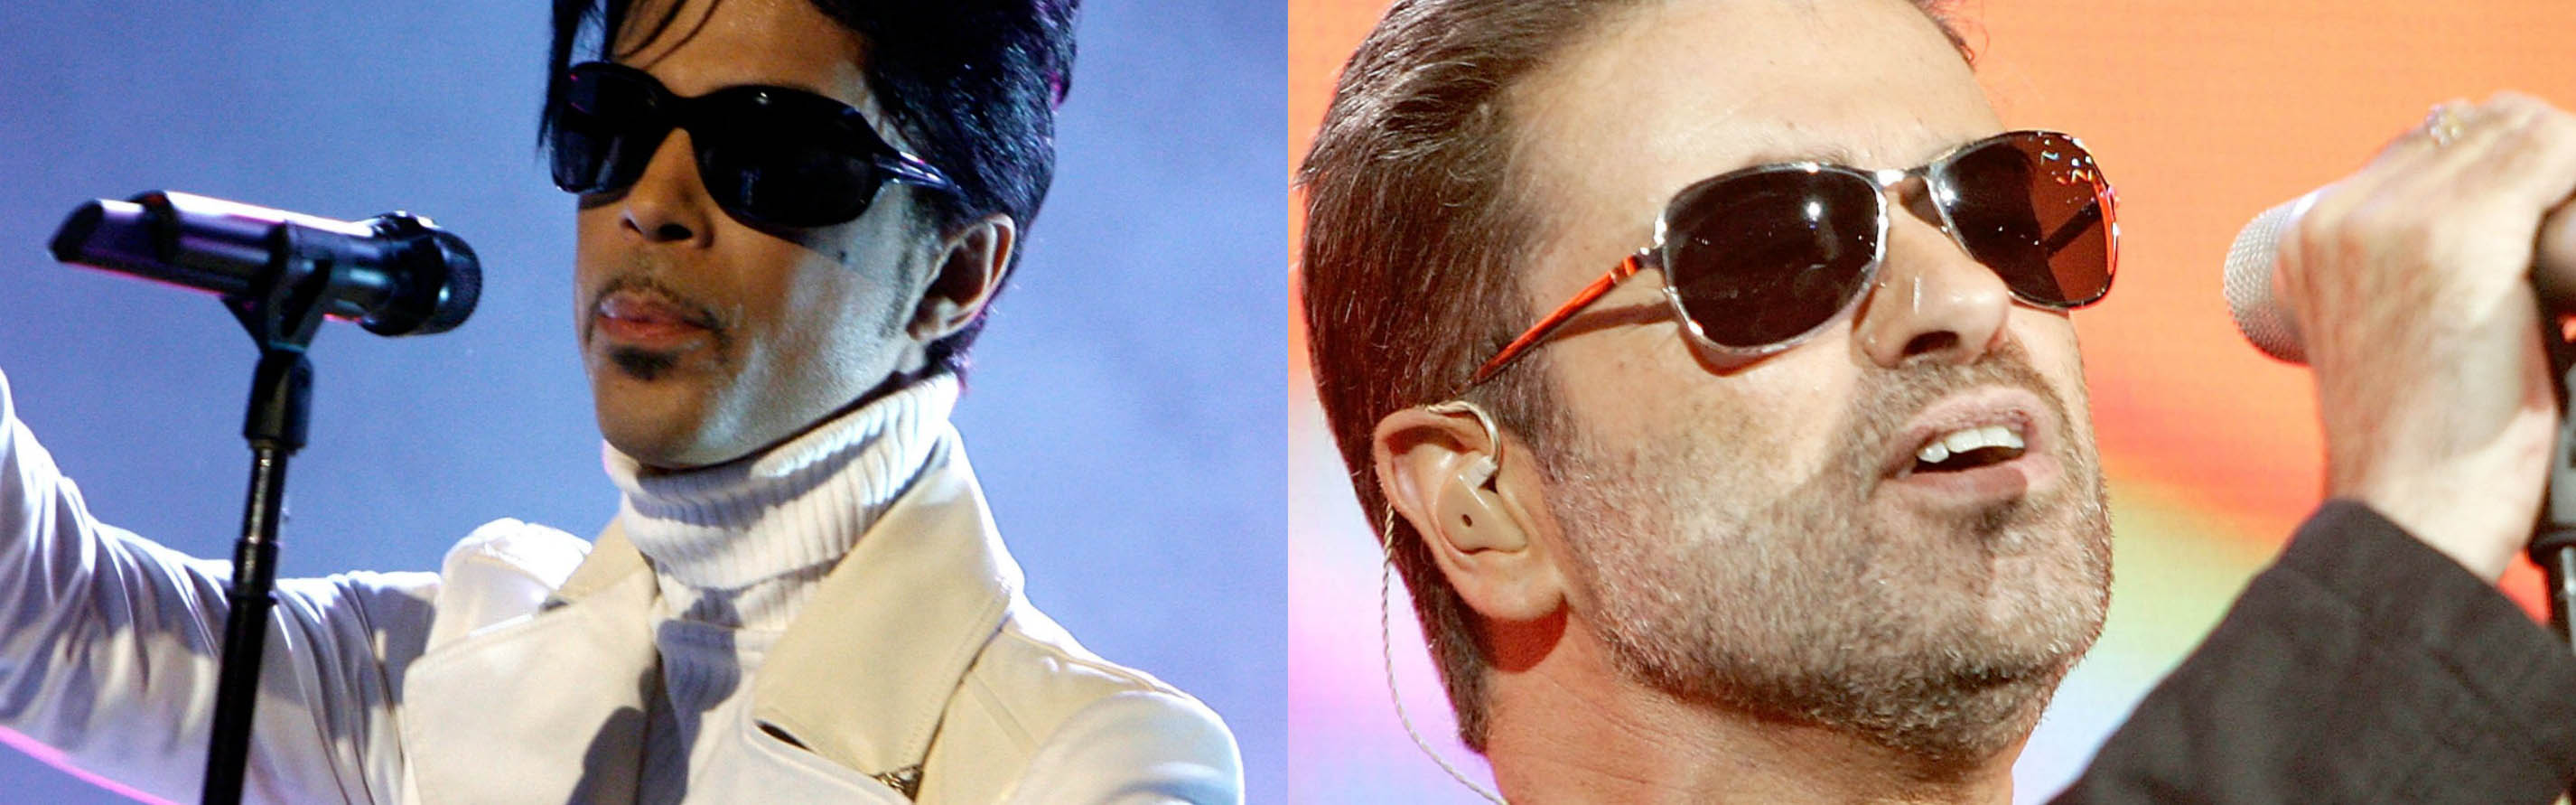 george-michael-prince-tribute-grammys-1486602011